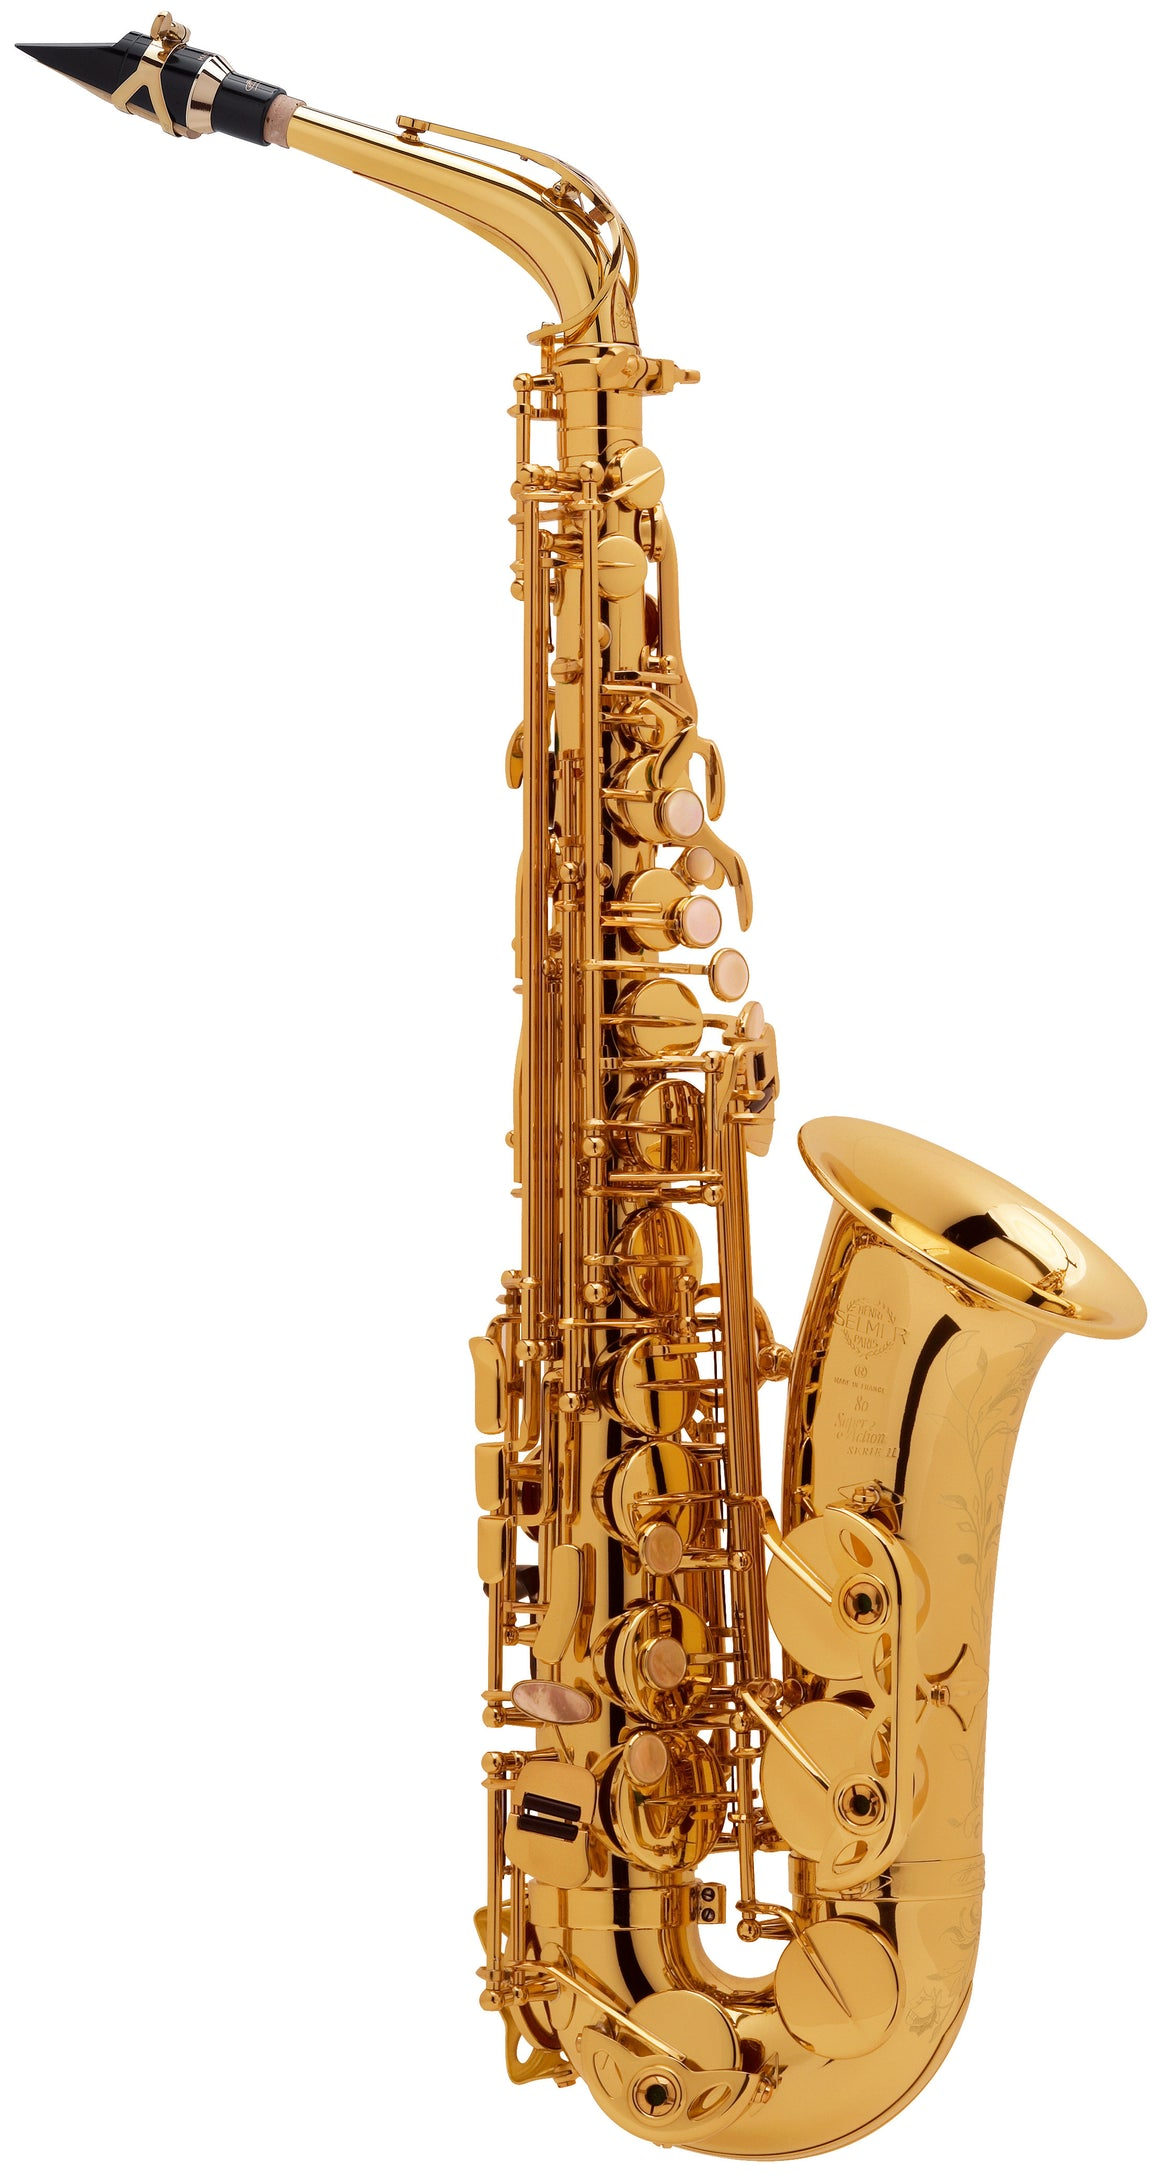 Selmer Paris Alto Saxophone - 52JGP - Gold Plated - H & H Music